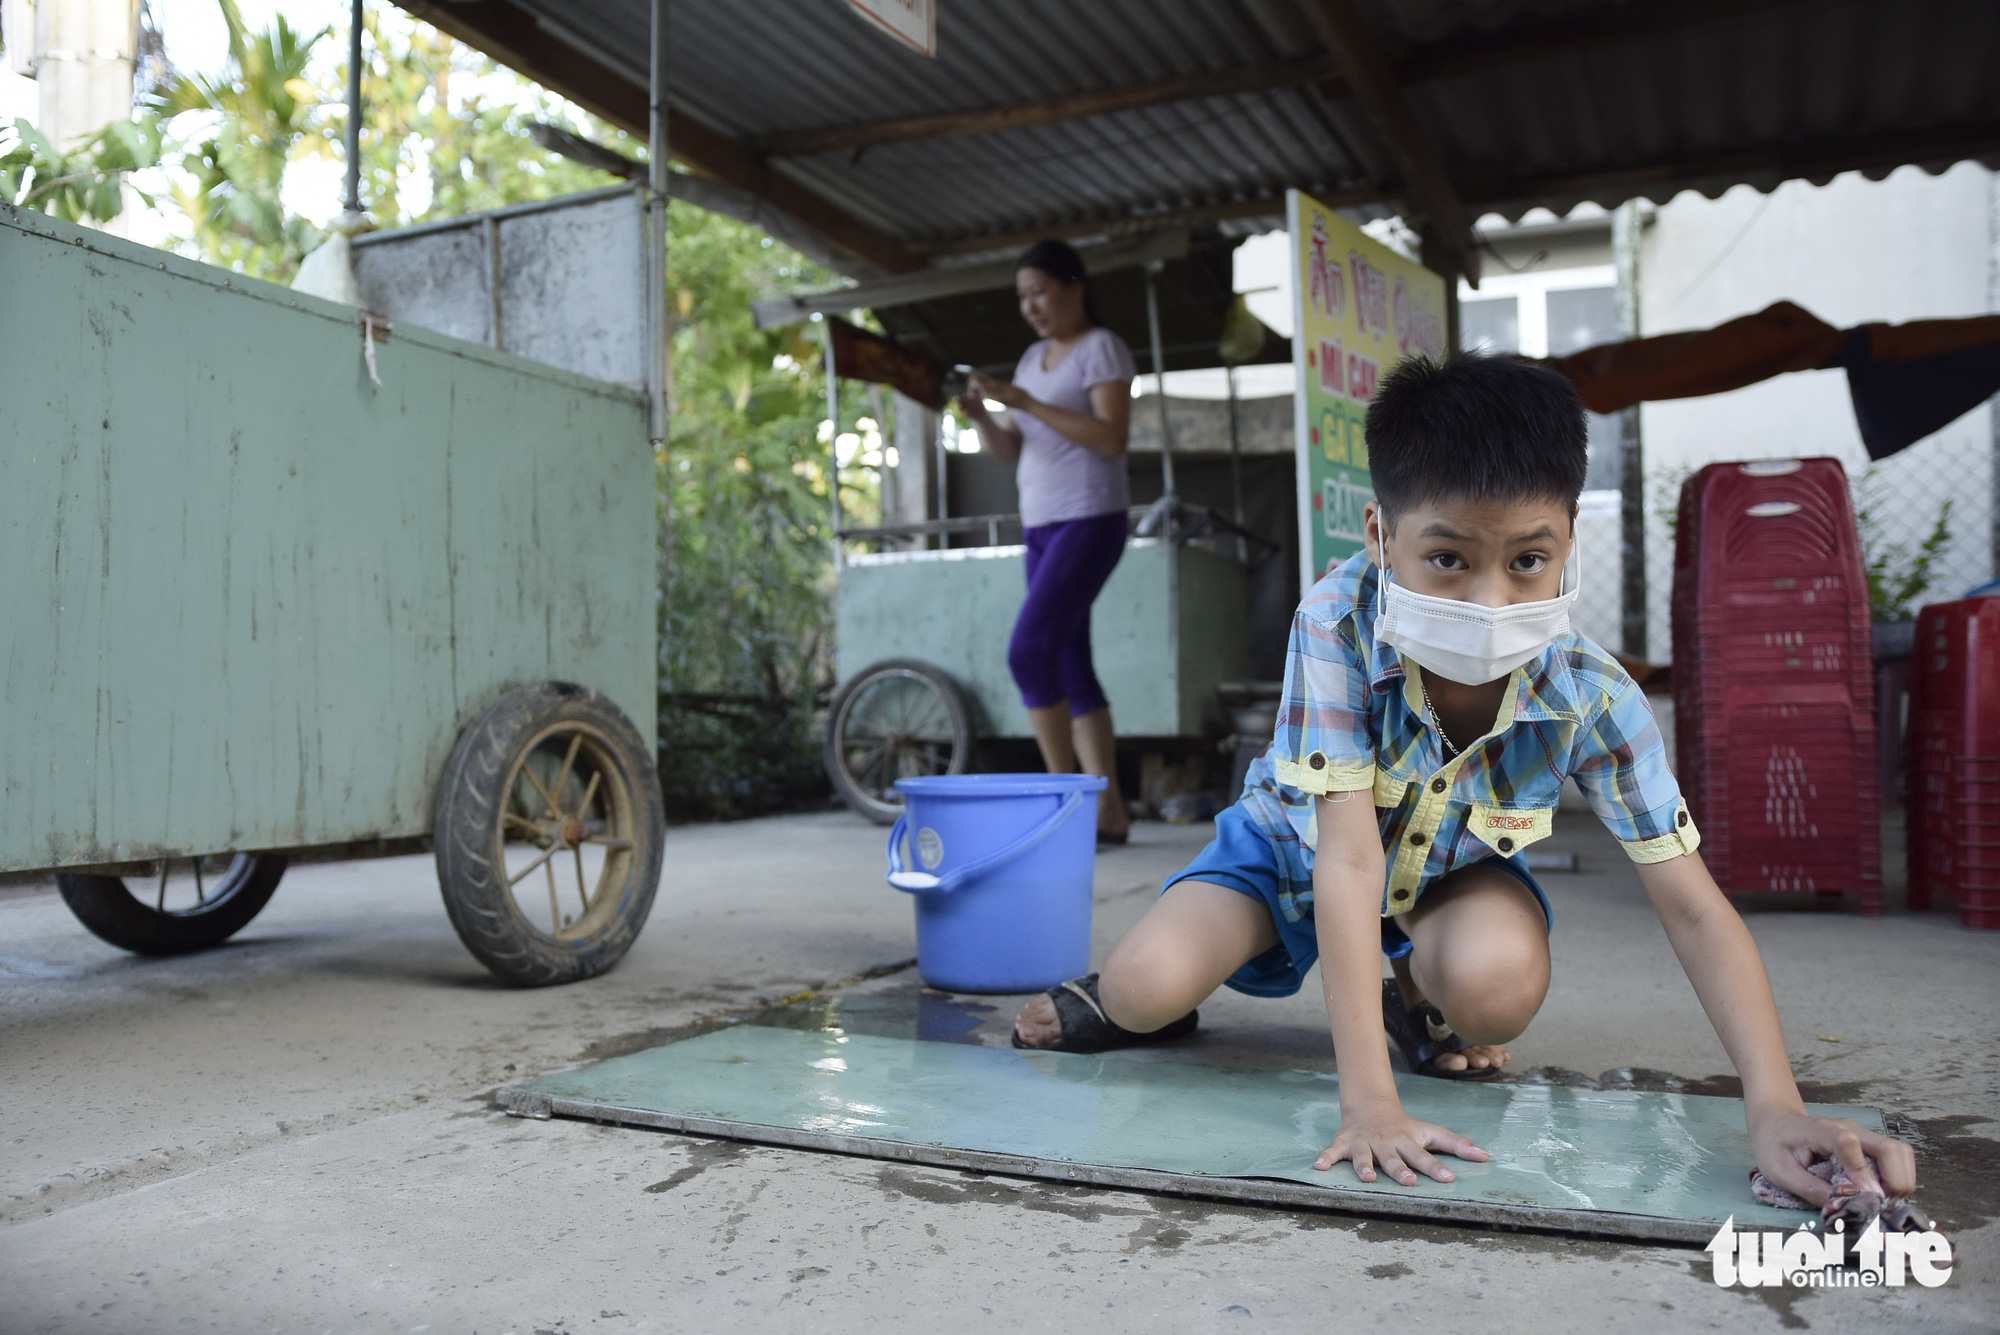 Nguyen Ngoc Thien Thanh helps clean things so that his grandmother and mother can get their food cart back on track in Hoi An City, Quang Nam Province in central Vietnam following a pandemic-caused disruption in this supplied photo.